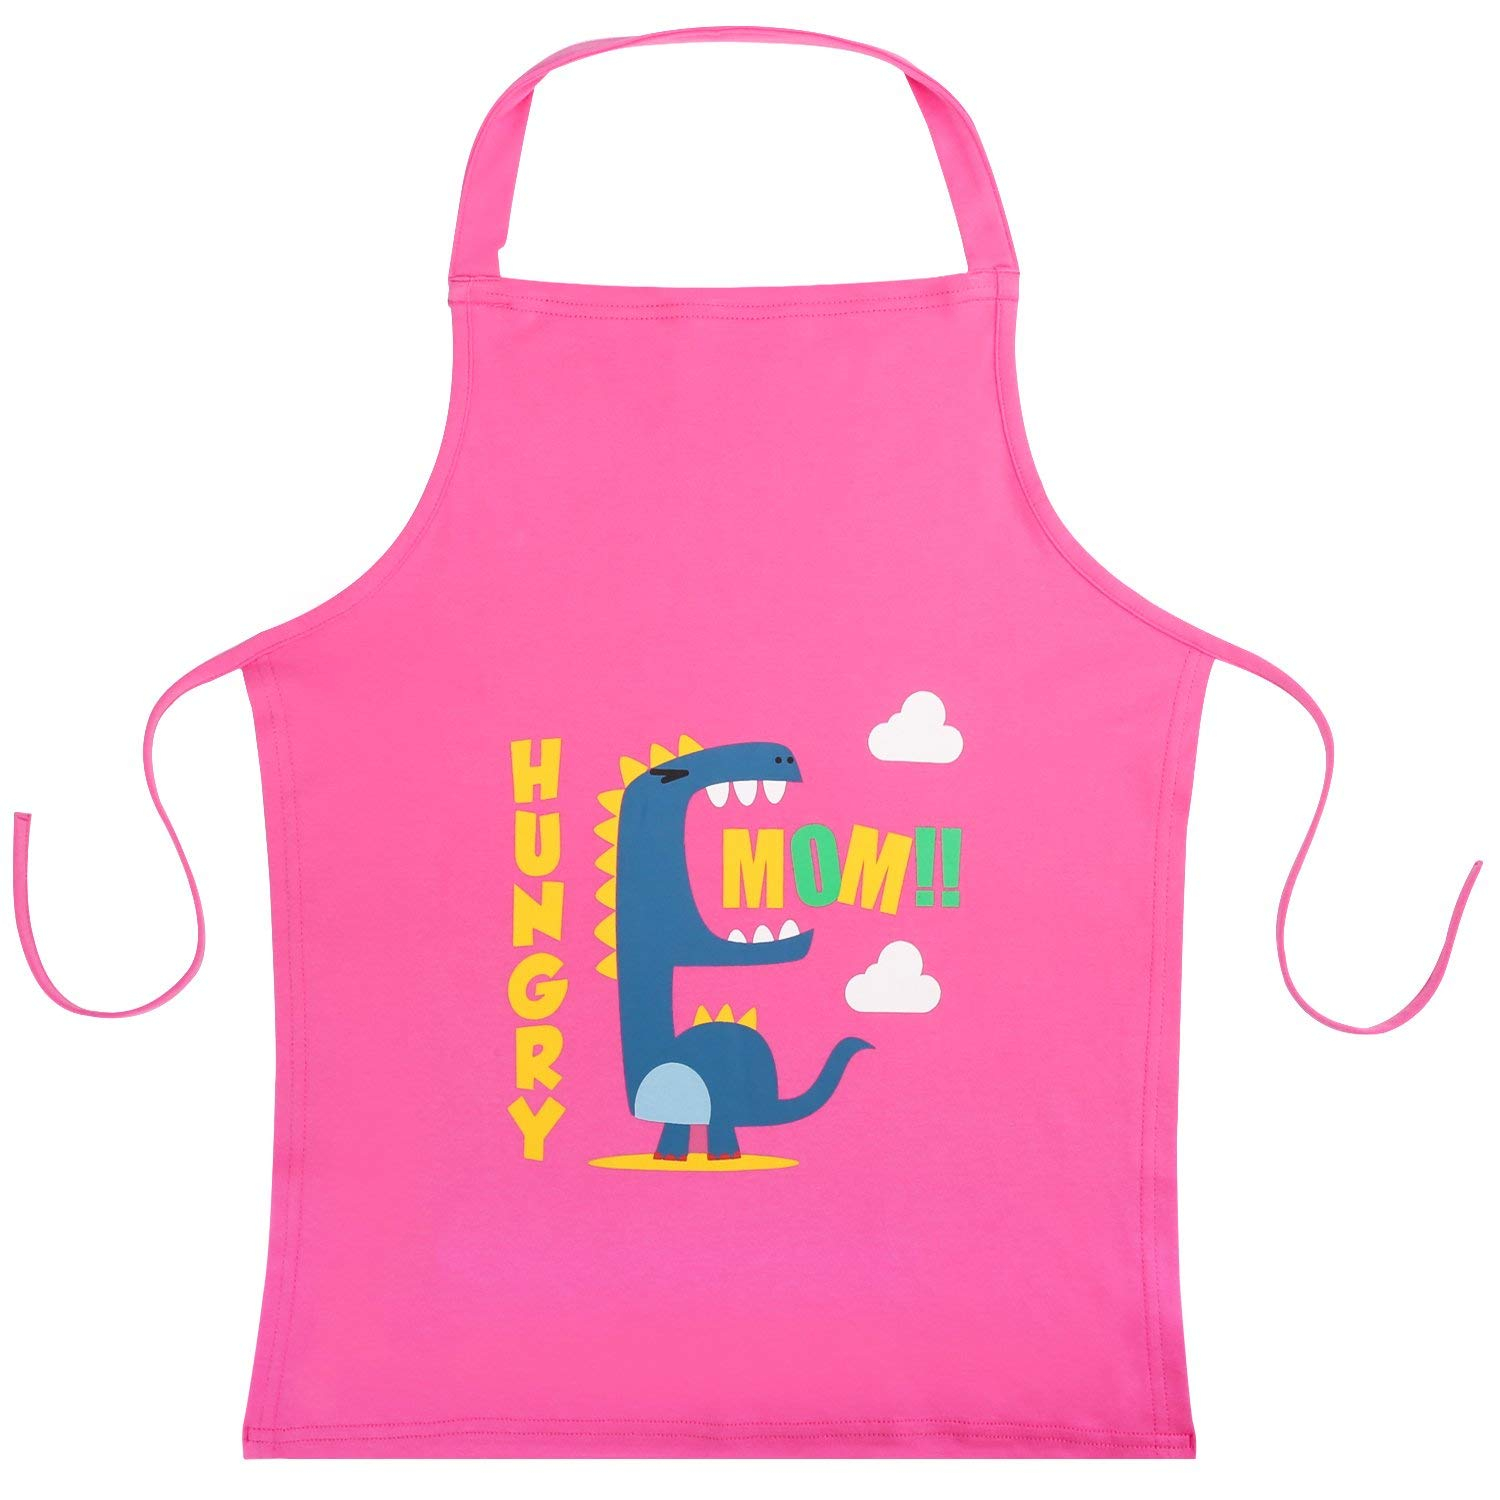 "Nuovoware Kids Apron, Cute Cartoon Cotton Child Smock Reusable Small Apron 22"" x 18"" for Cooking, Painting, Crafts and Classroom - Pink"